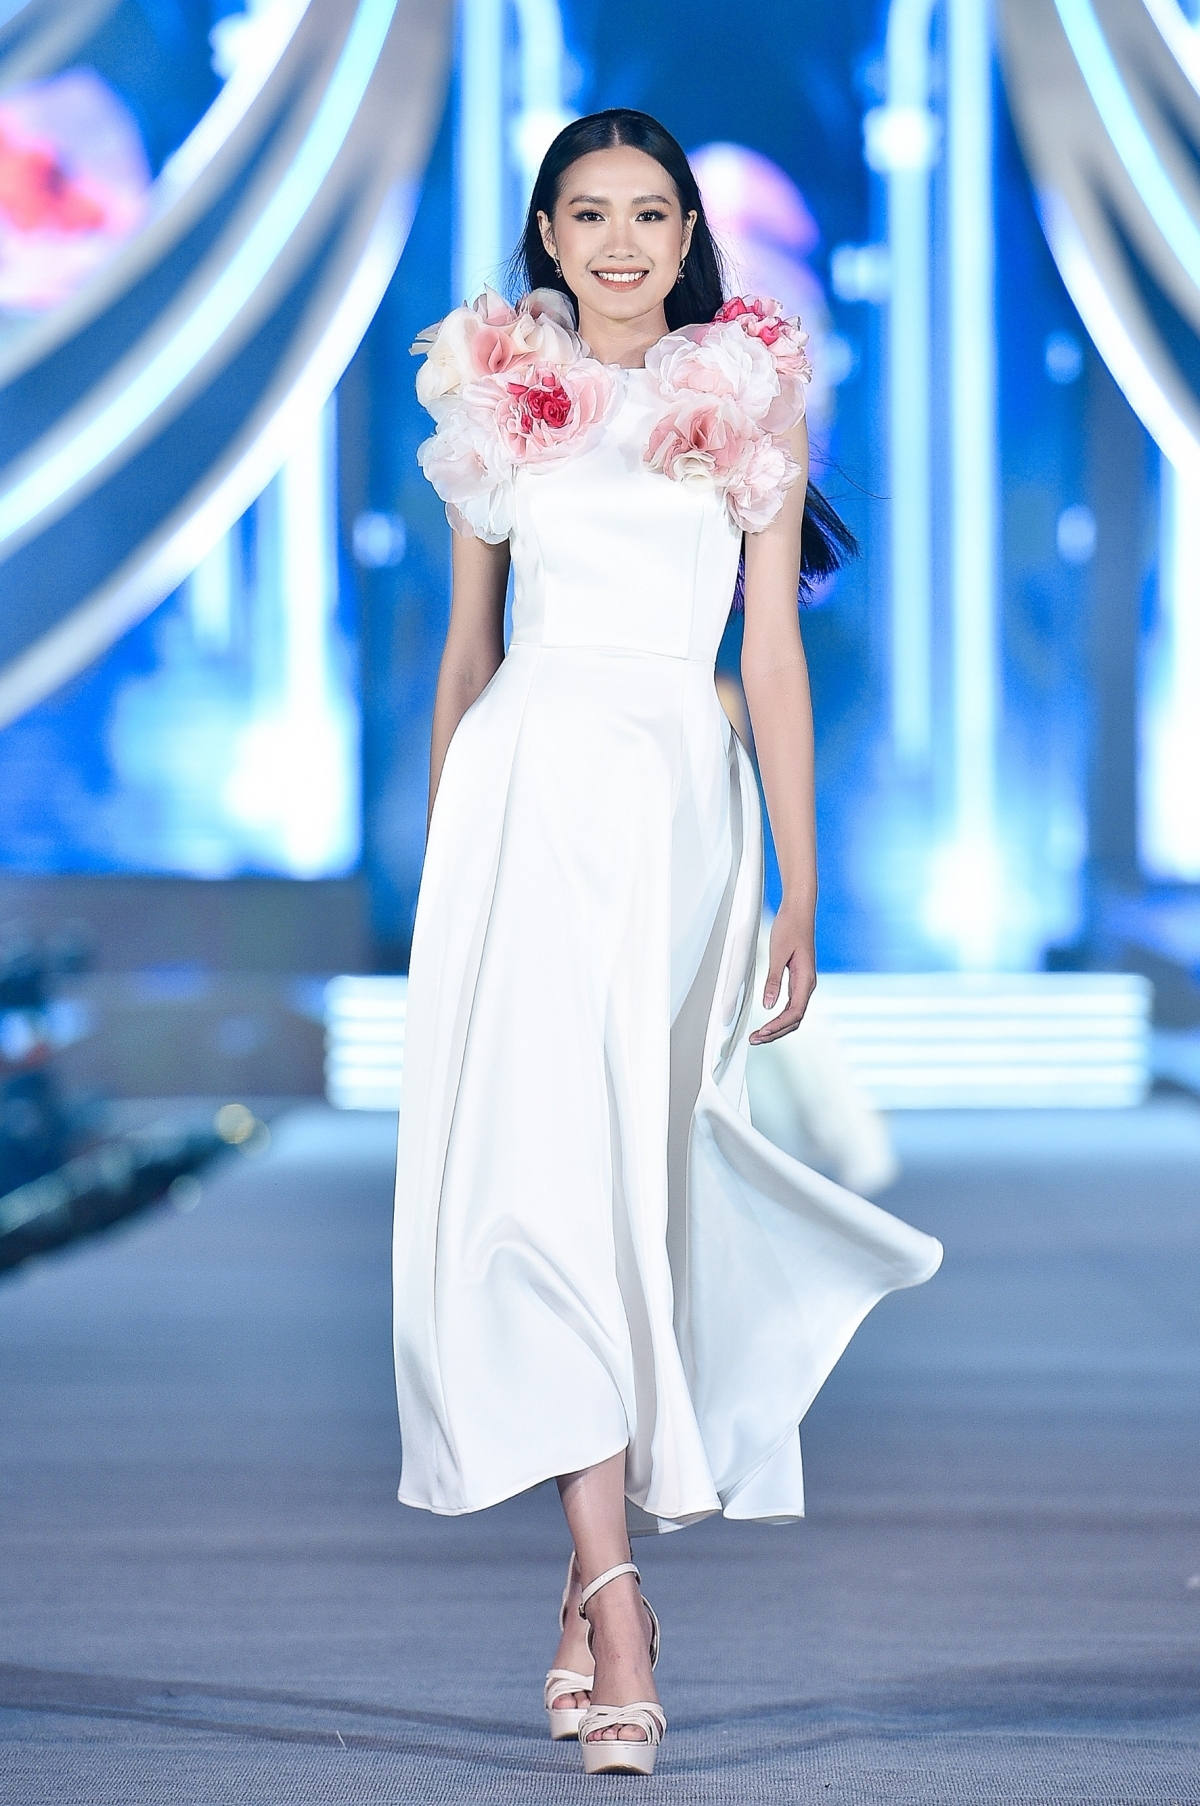 The fashion collection draws inspiration from peony and daisy flowers.